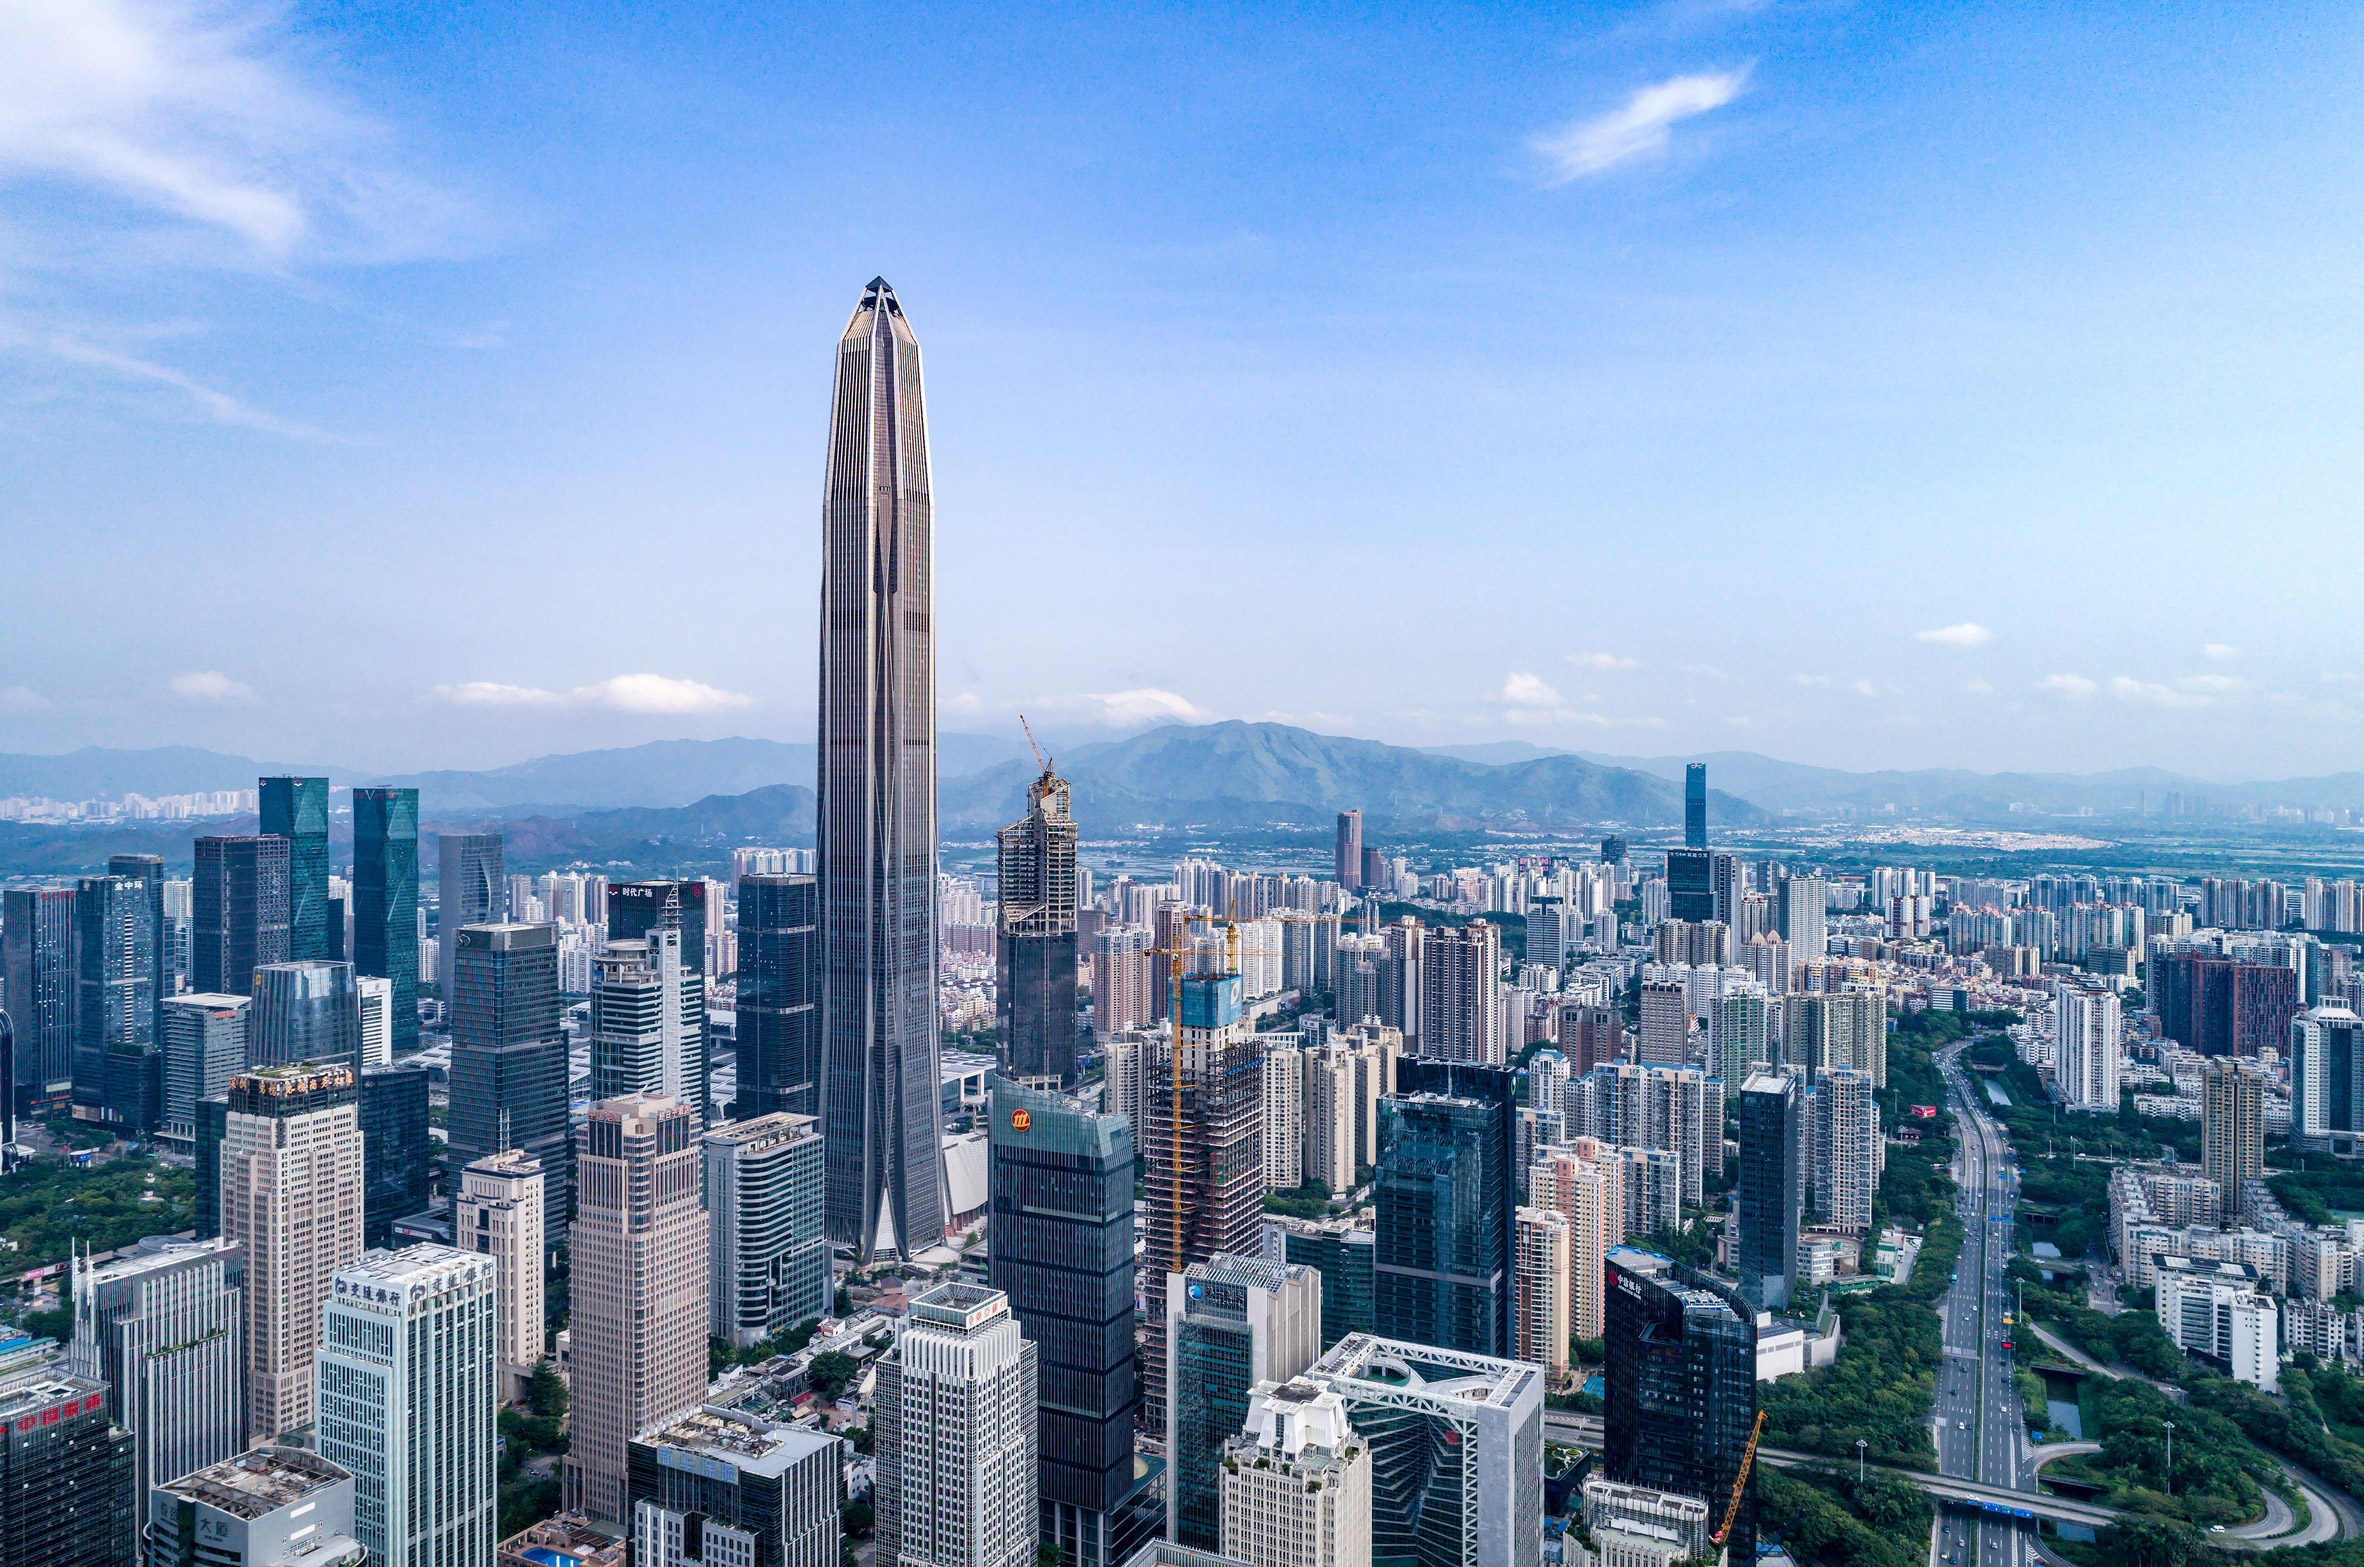 China is the best place to learn about smart cities, says Carlo Ratti